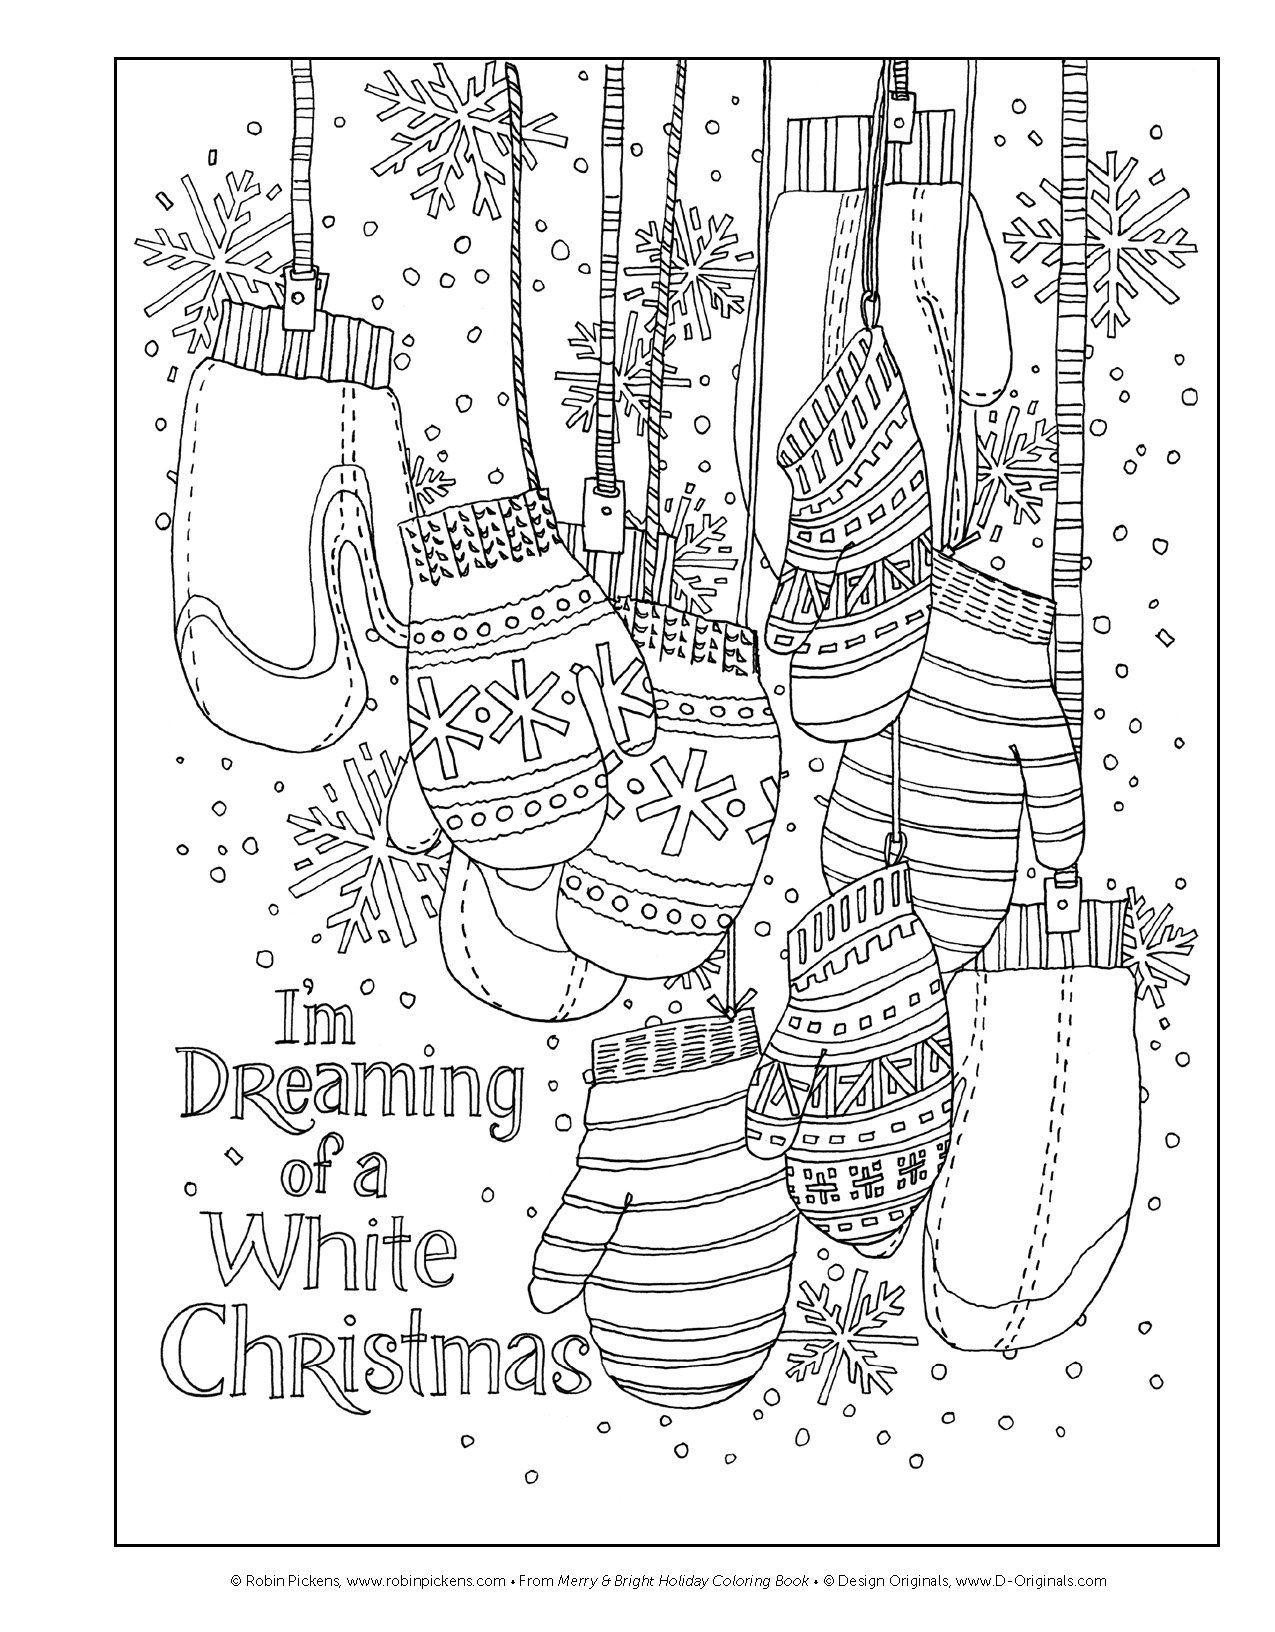 Amazon.com: Merry & Bright Holiday Coloring Book (Design Originals ...